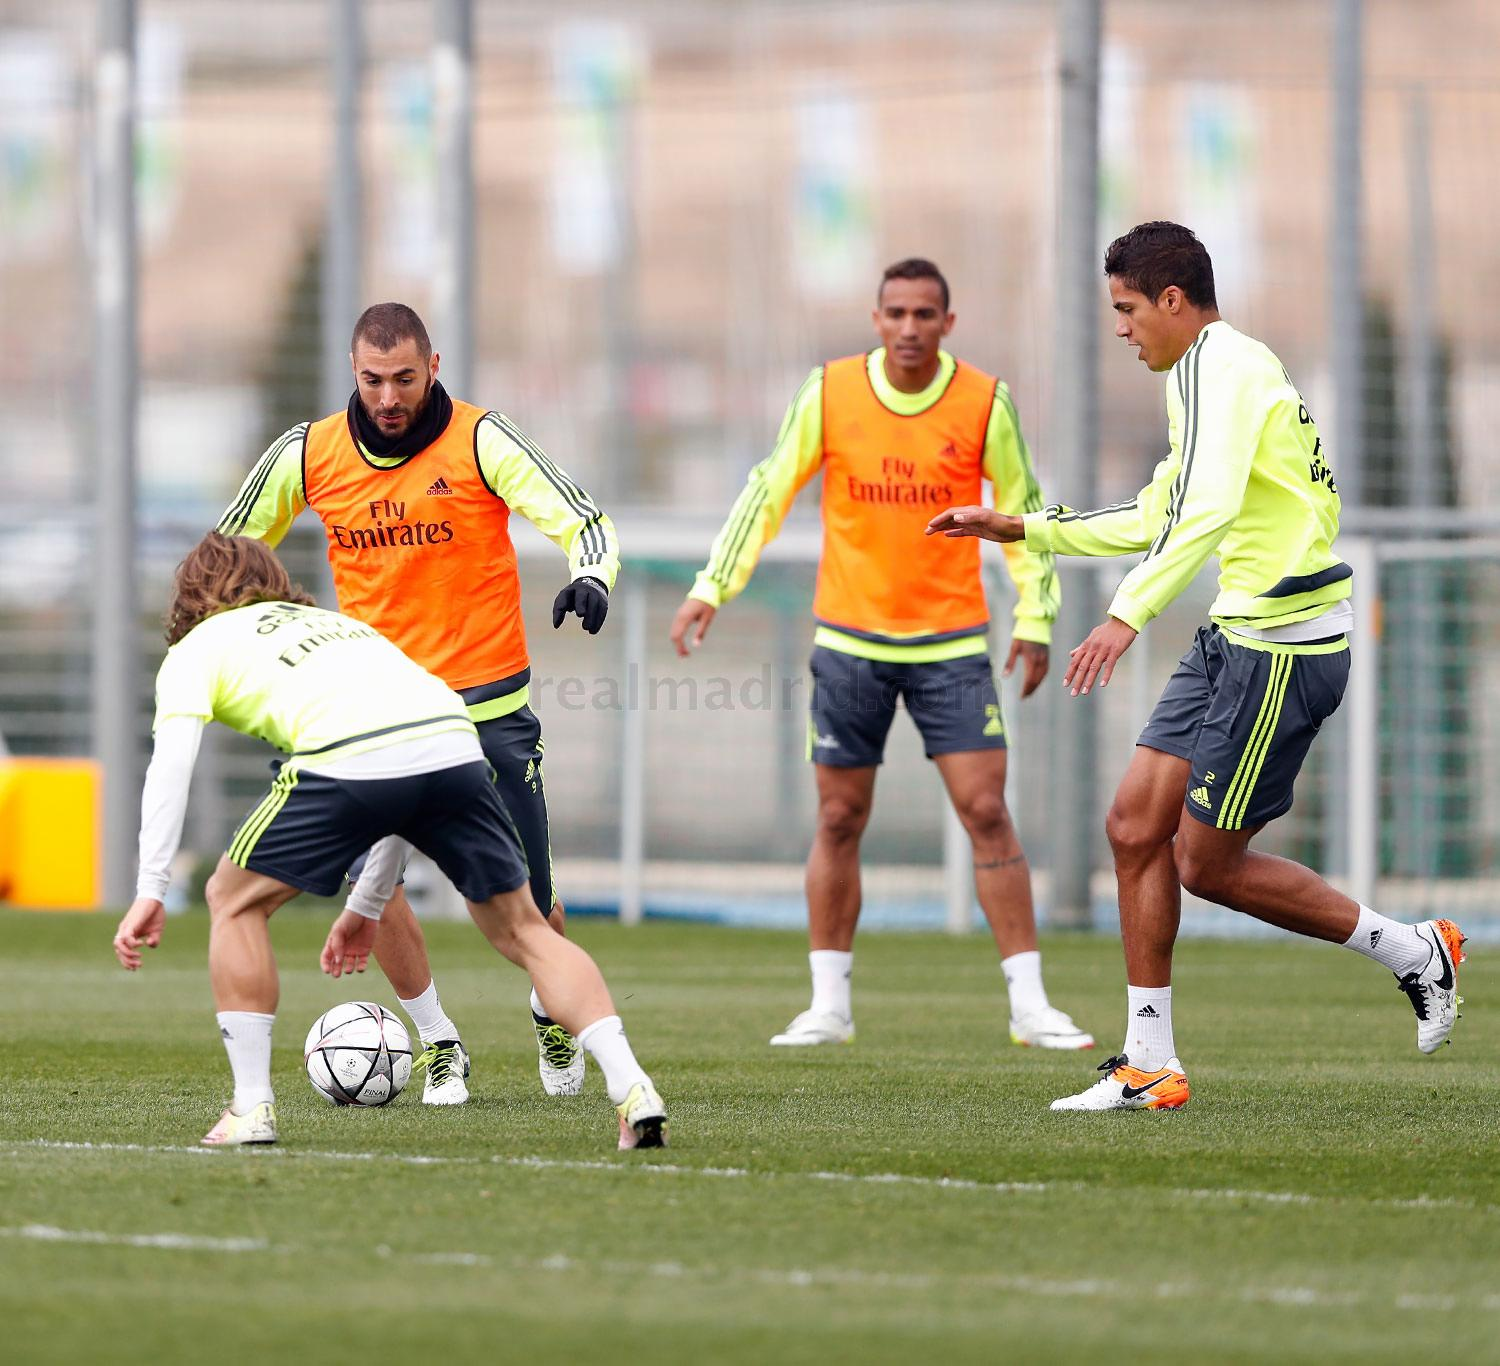 Real Madrid - Entrenamiento del Real Madrid - 10-04-2016